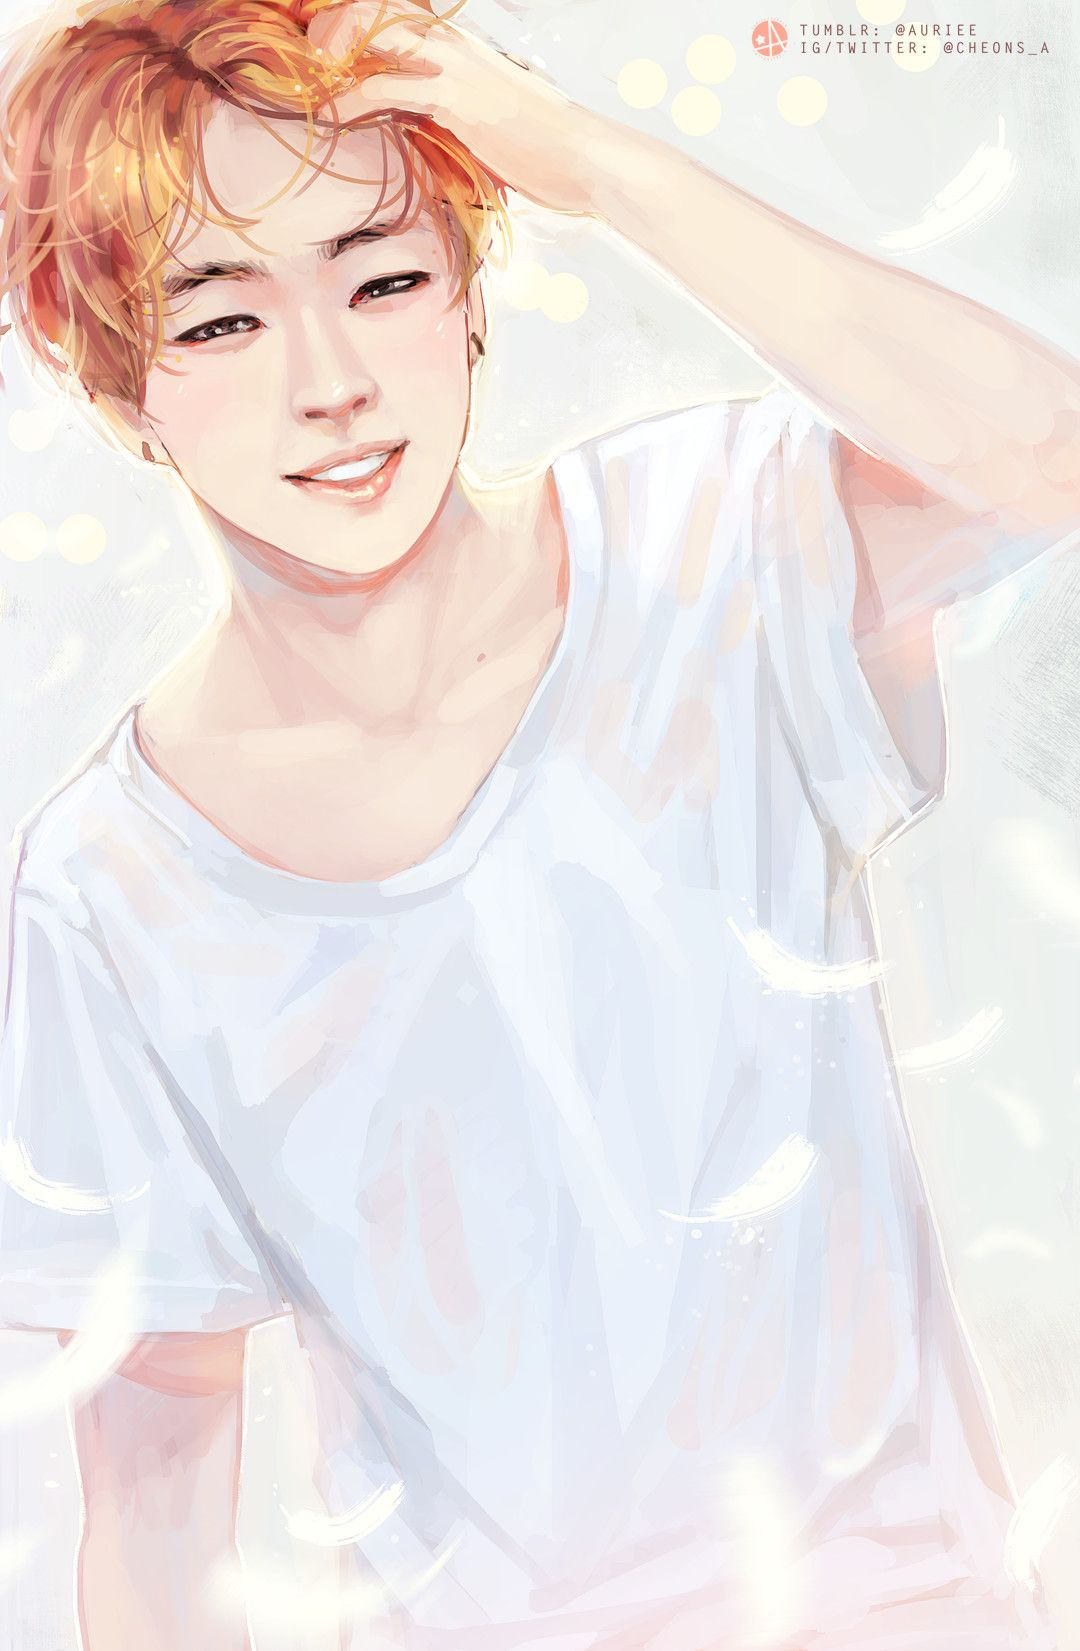 Jimin 'Run' Fanart not my art credit to the artist